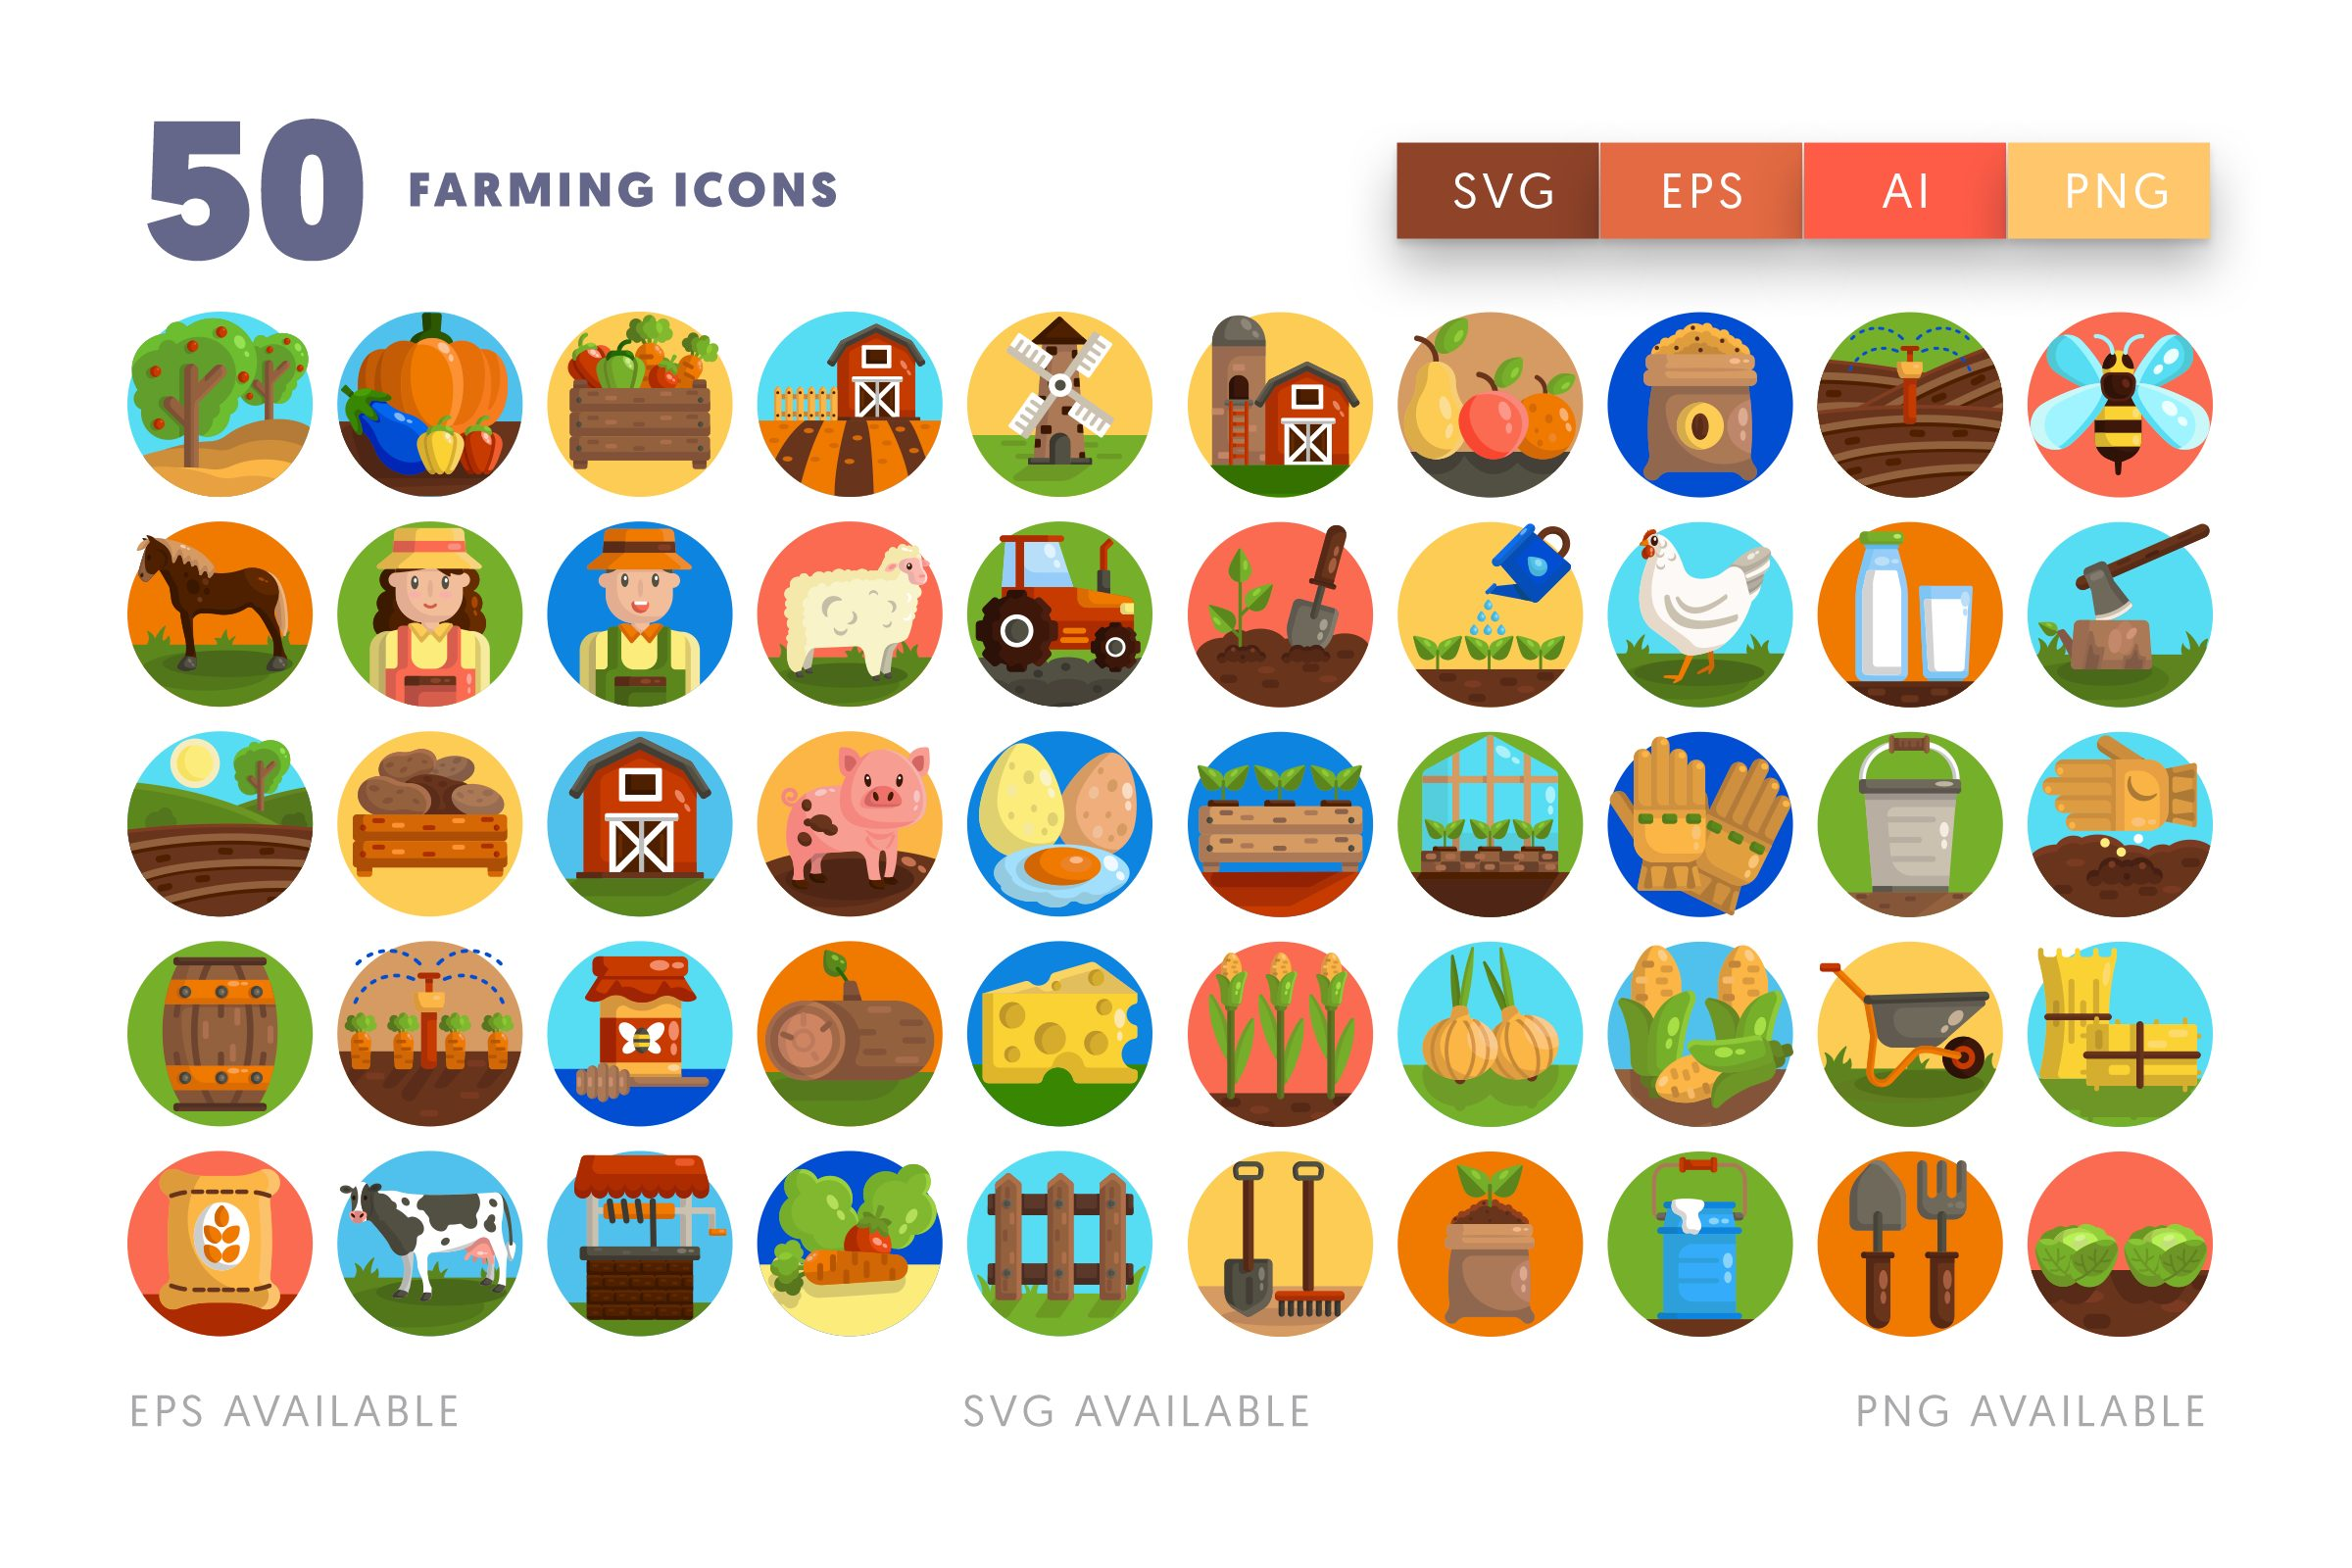 Farming icons png/svg/eps